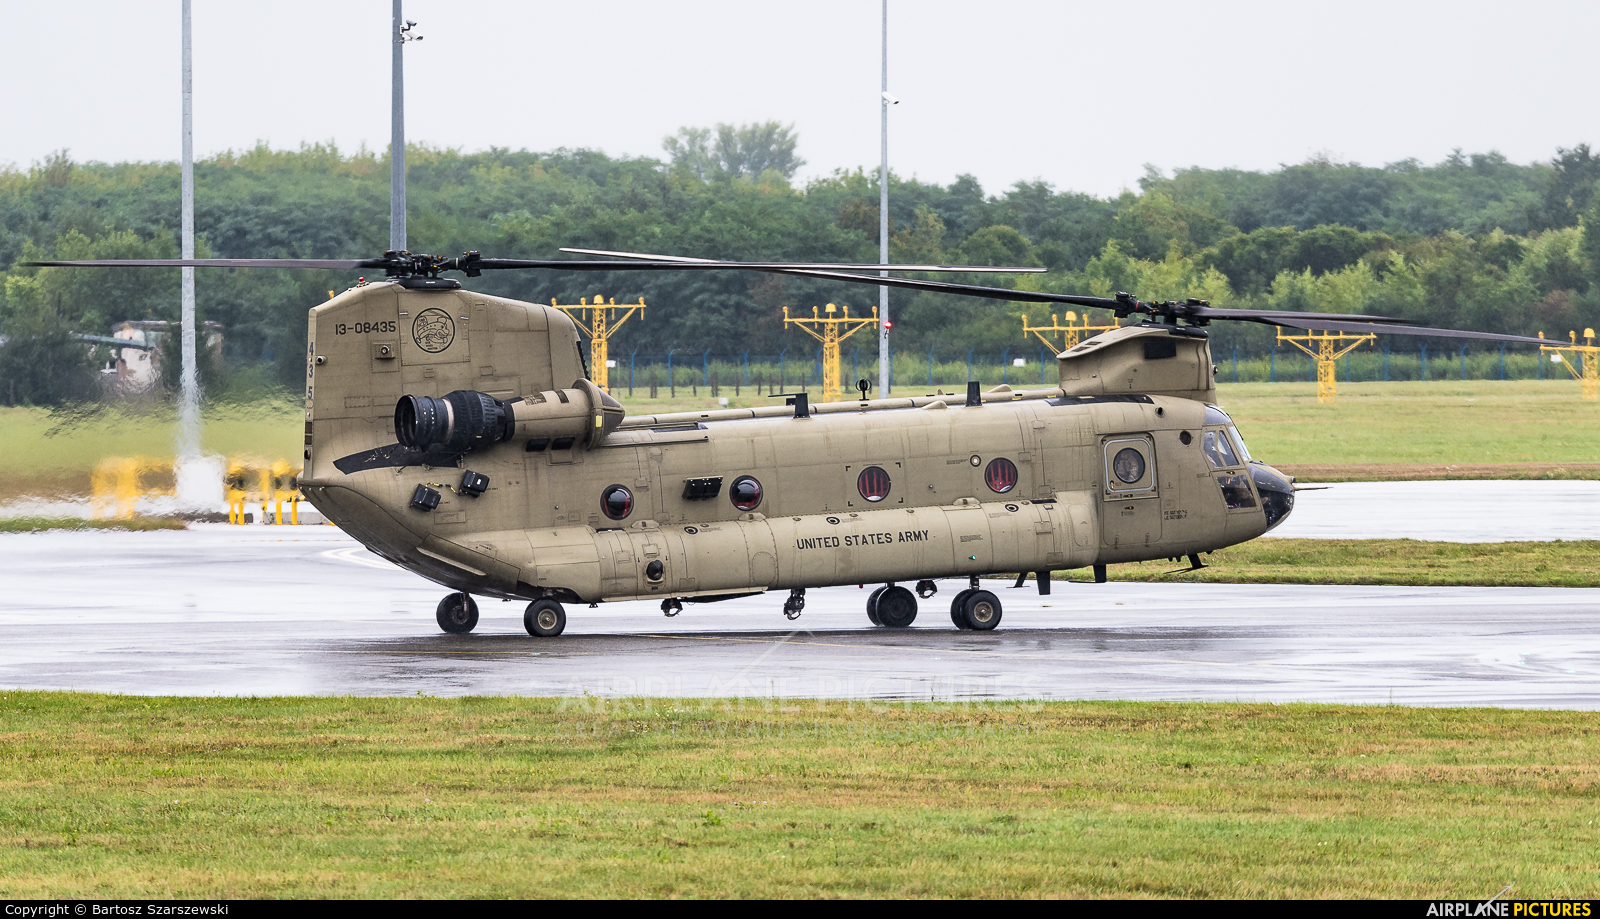 USA - Army 13-08435 aircraft at Wrocław - Copernicus